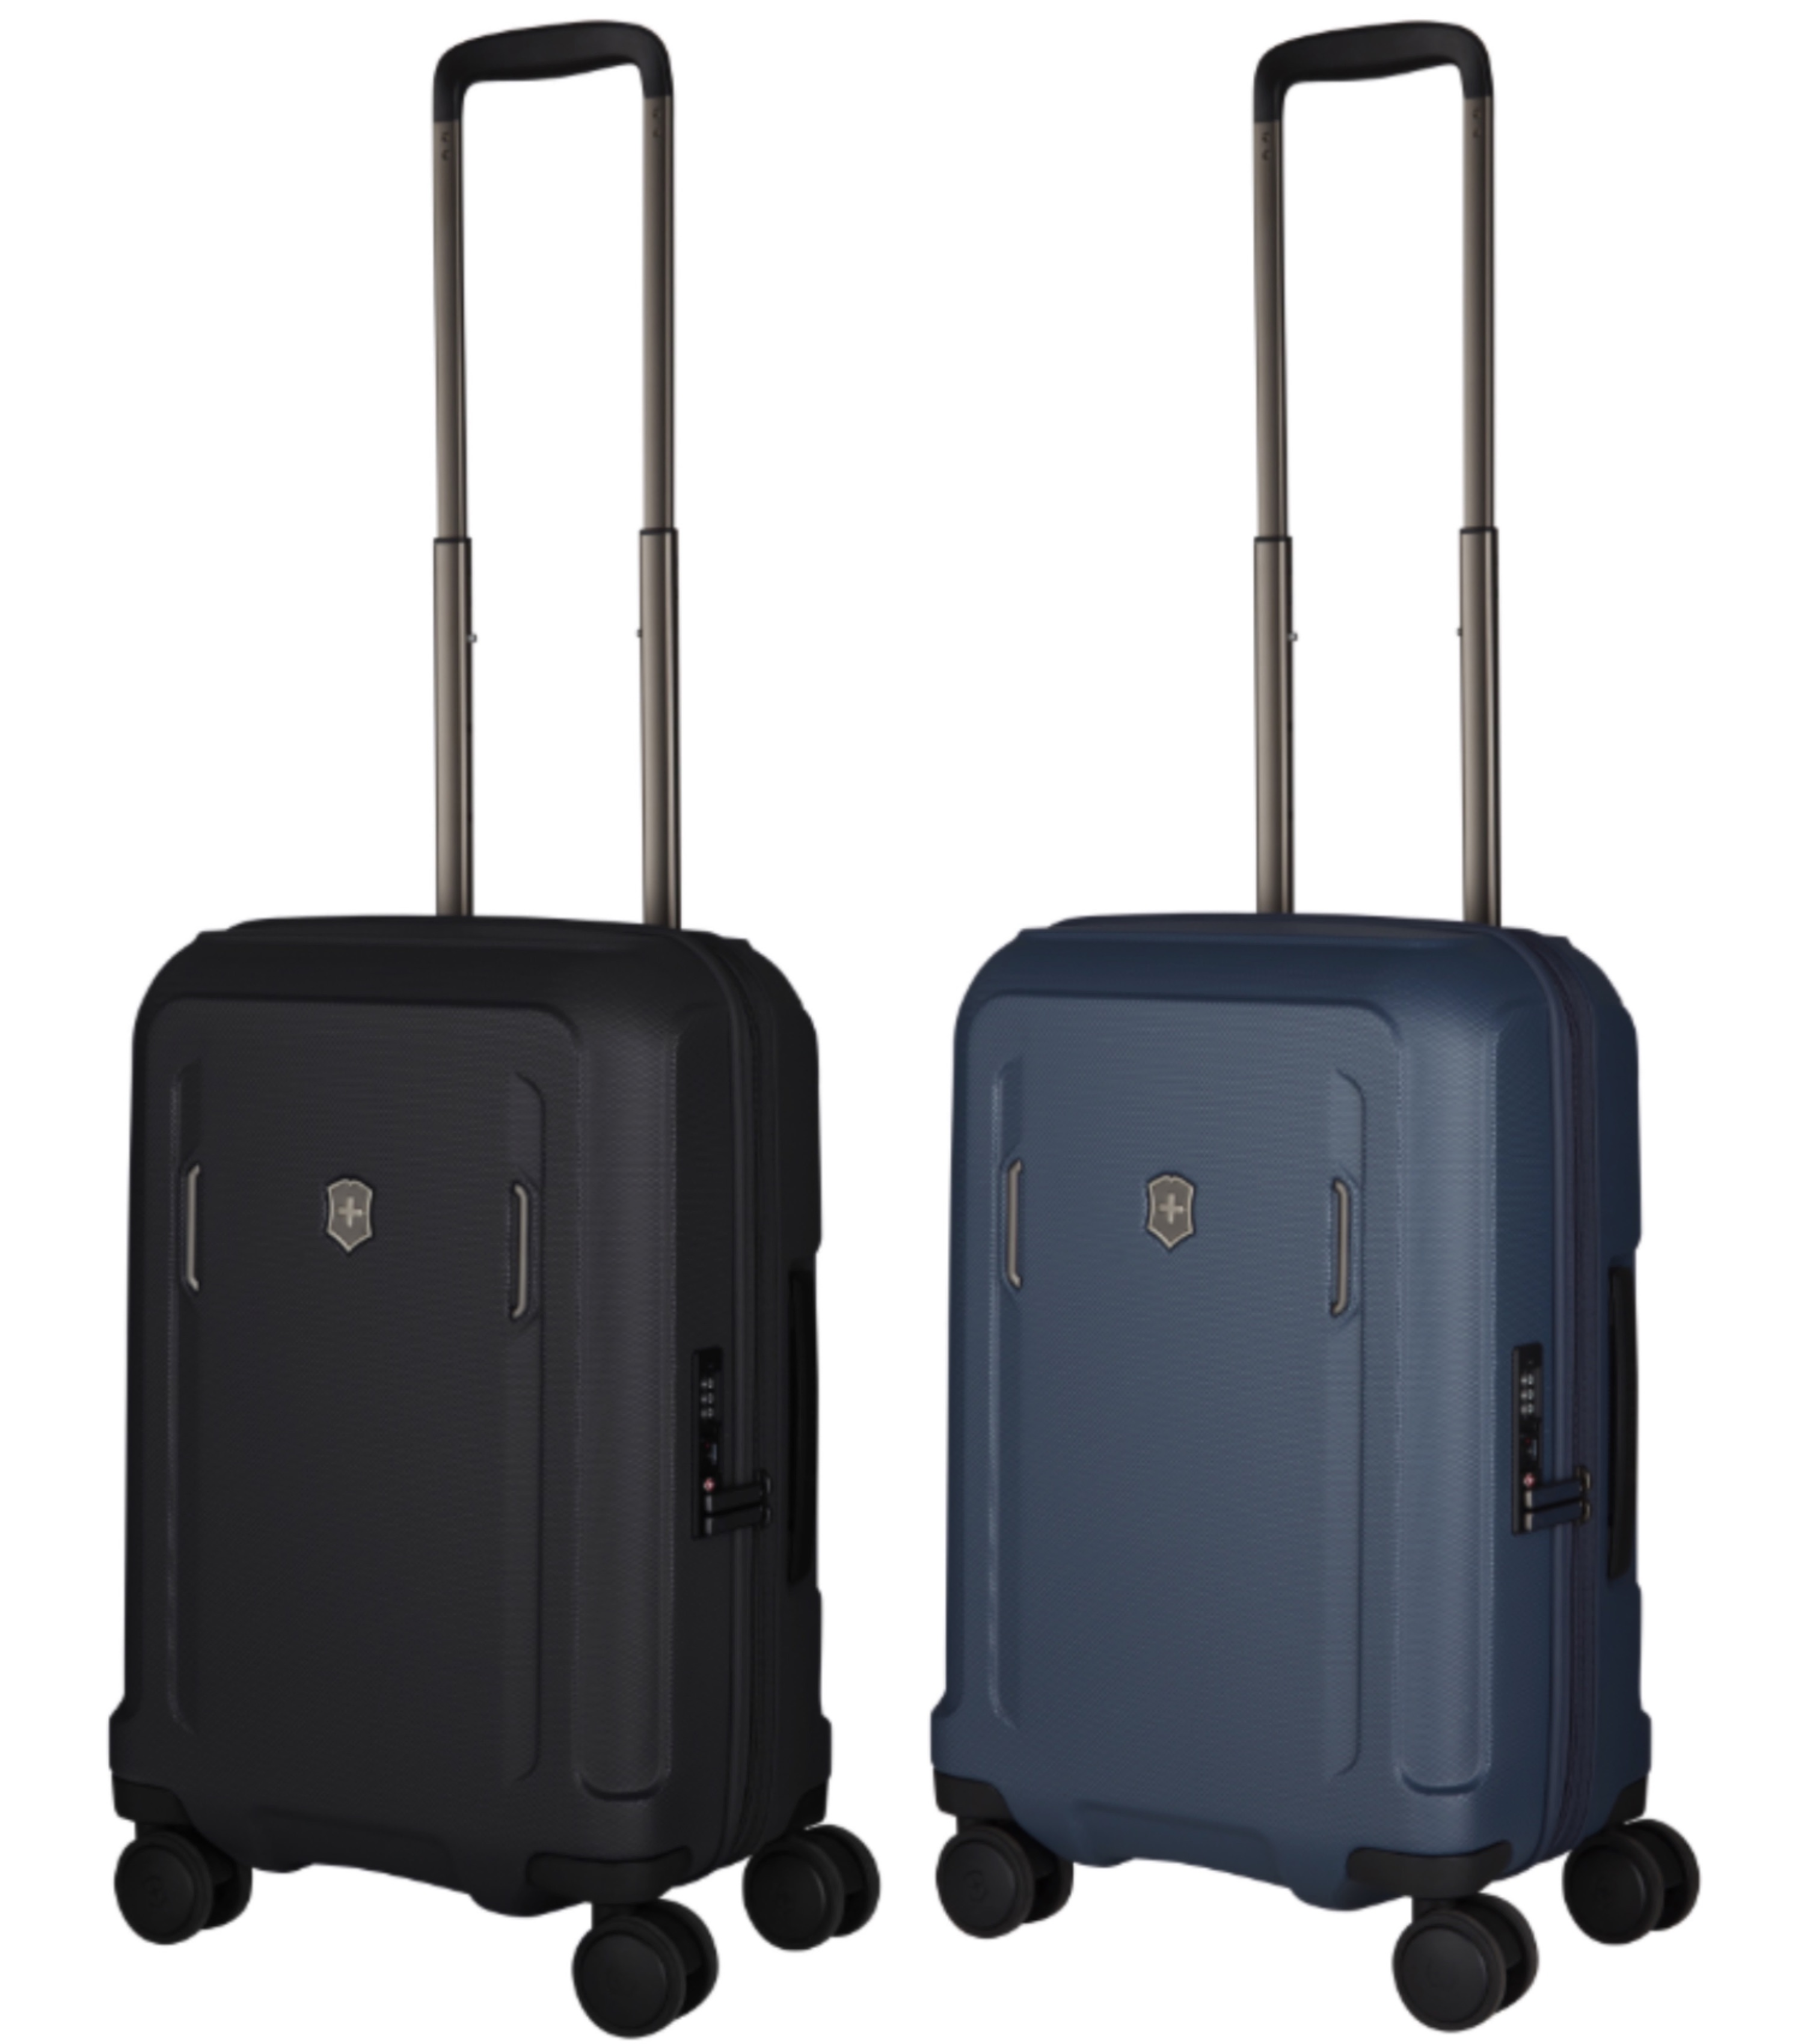 8121c22d7e42 Victorinox Werks Traveler 6.0 - 55cm Carry-On Dual-Caster Expandable  Hardside Frequent Flyer